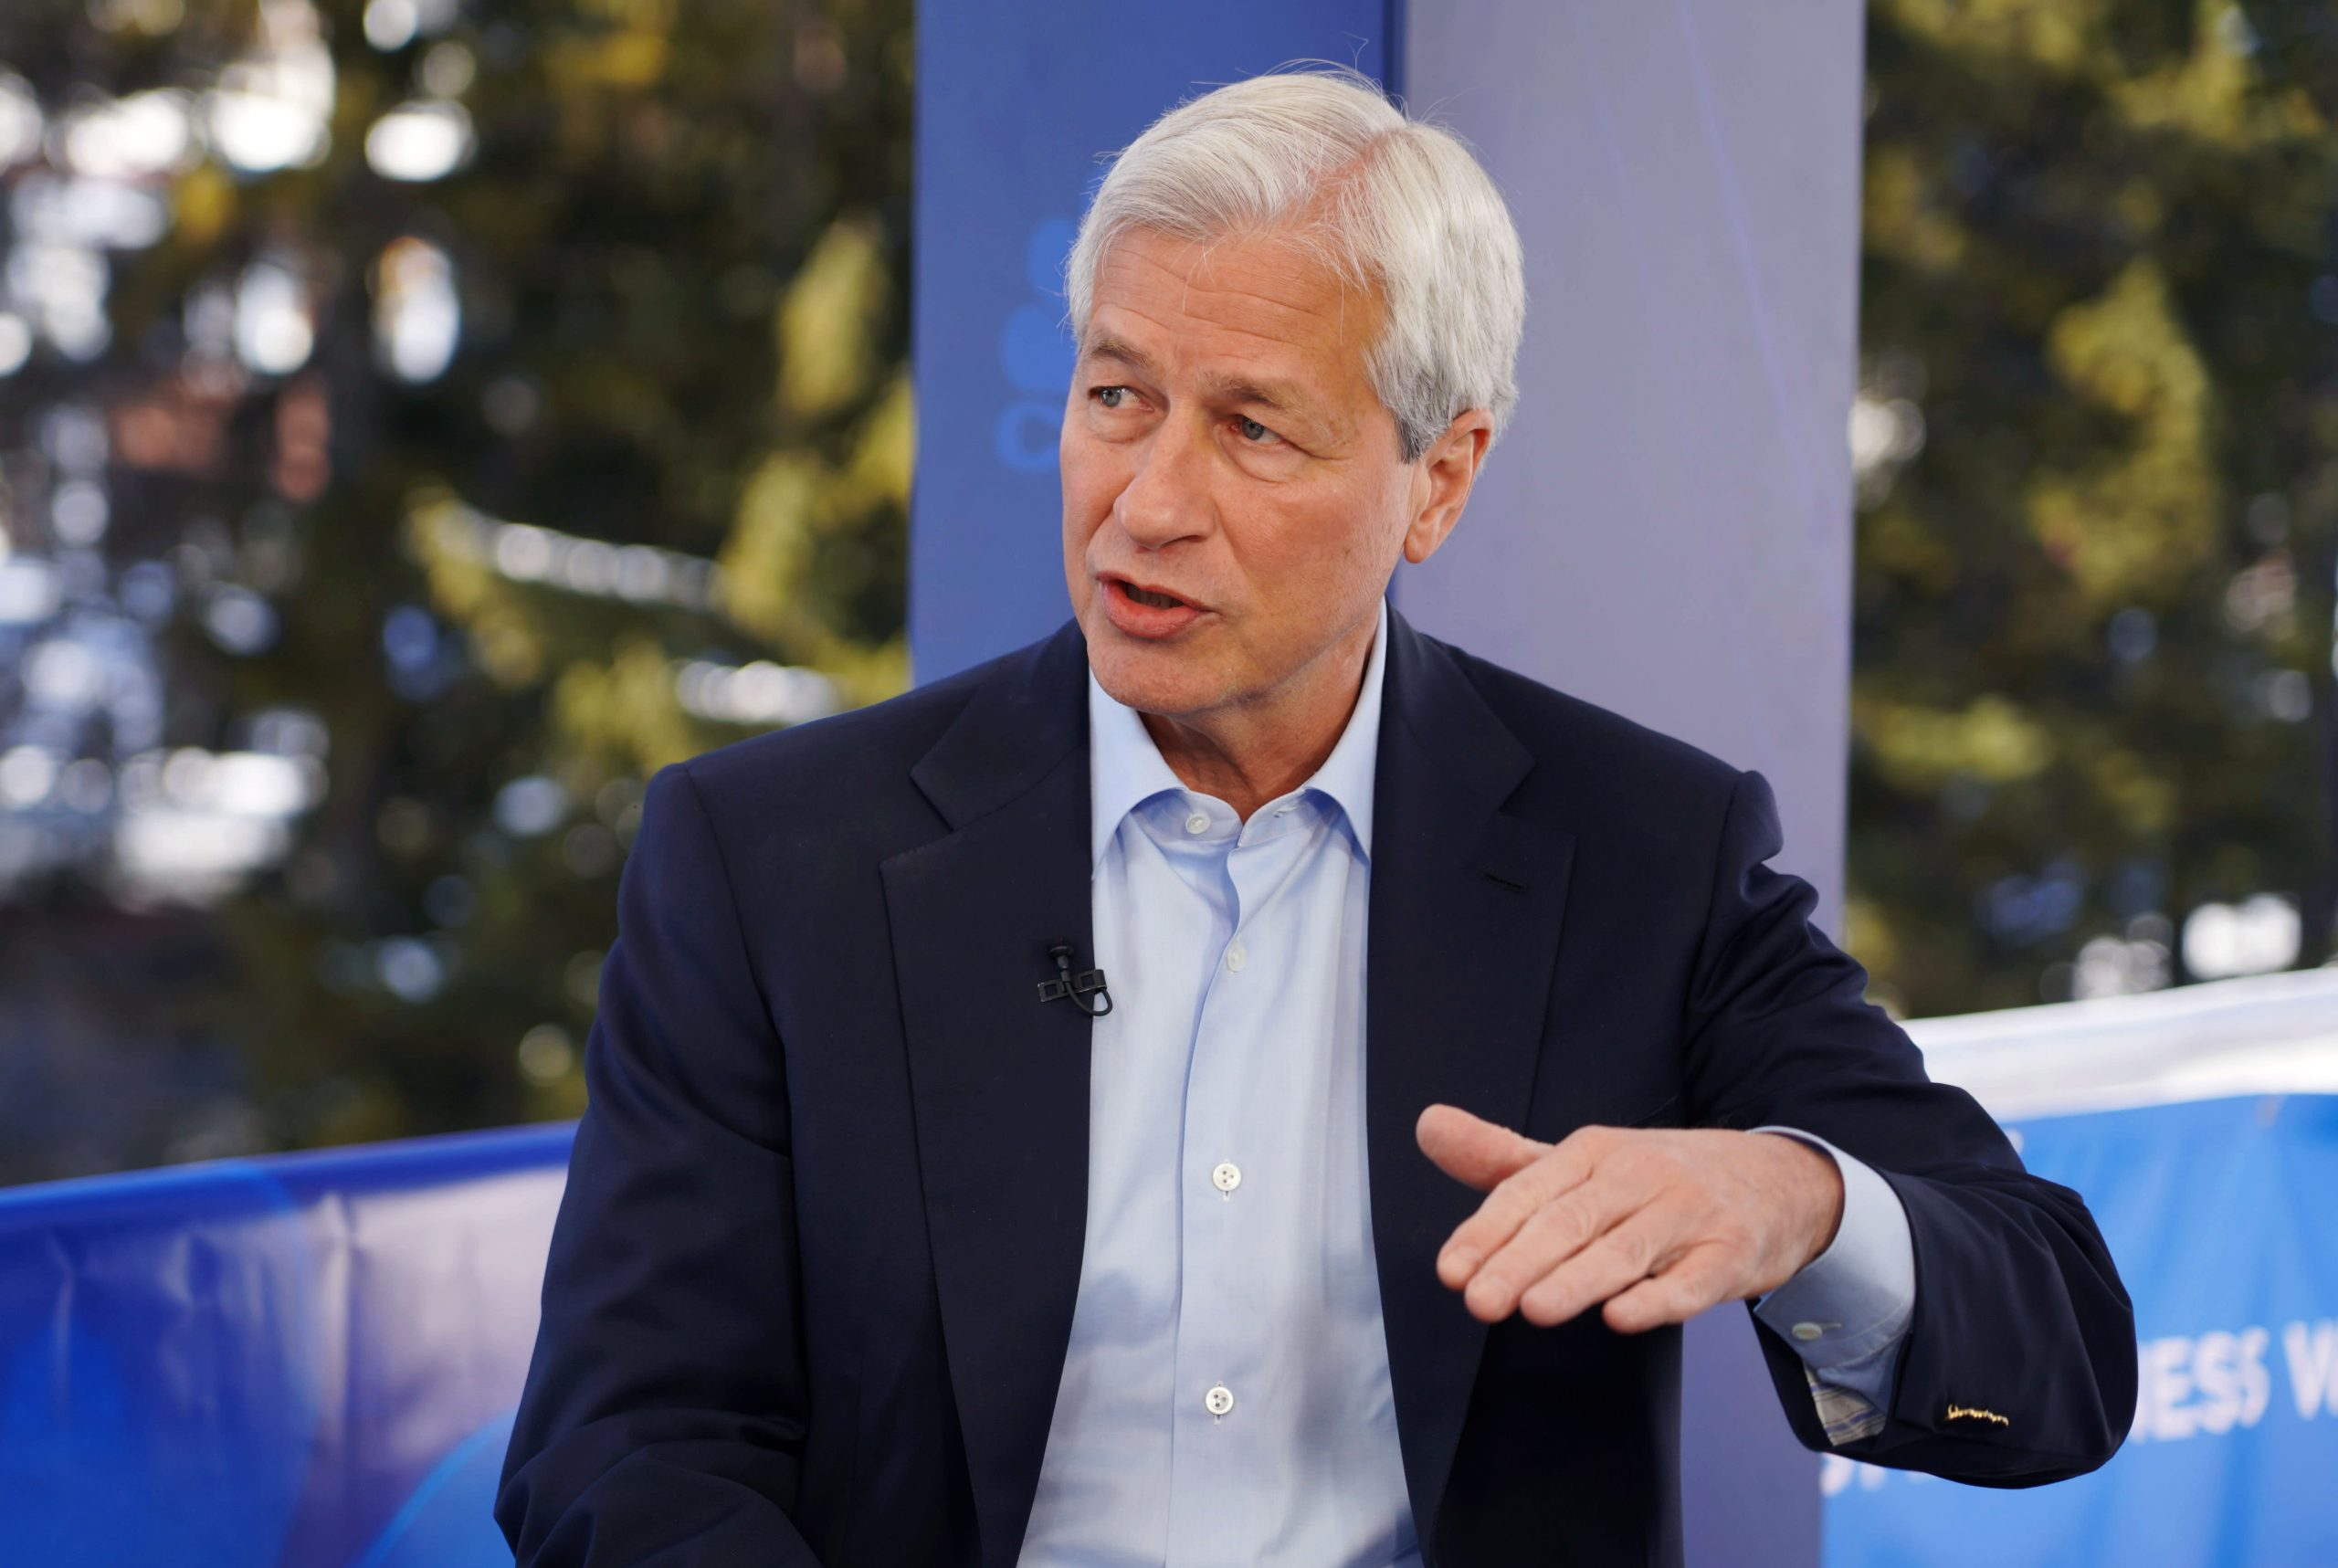 JPMorgan earnings This fall 2020